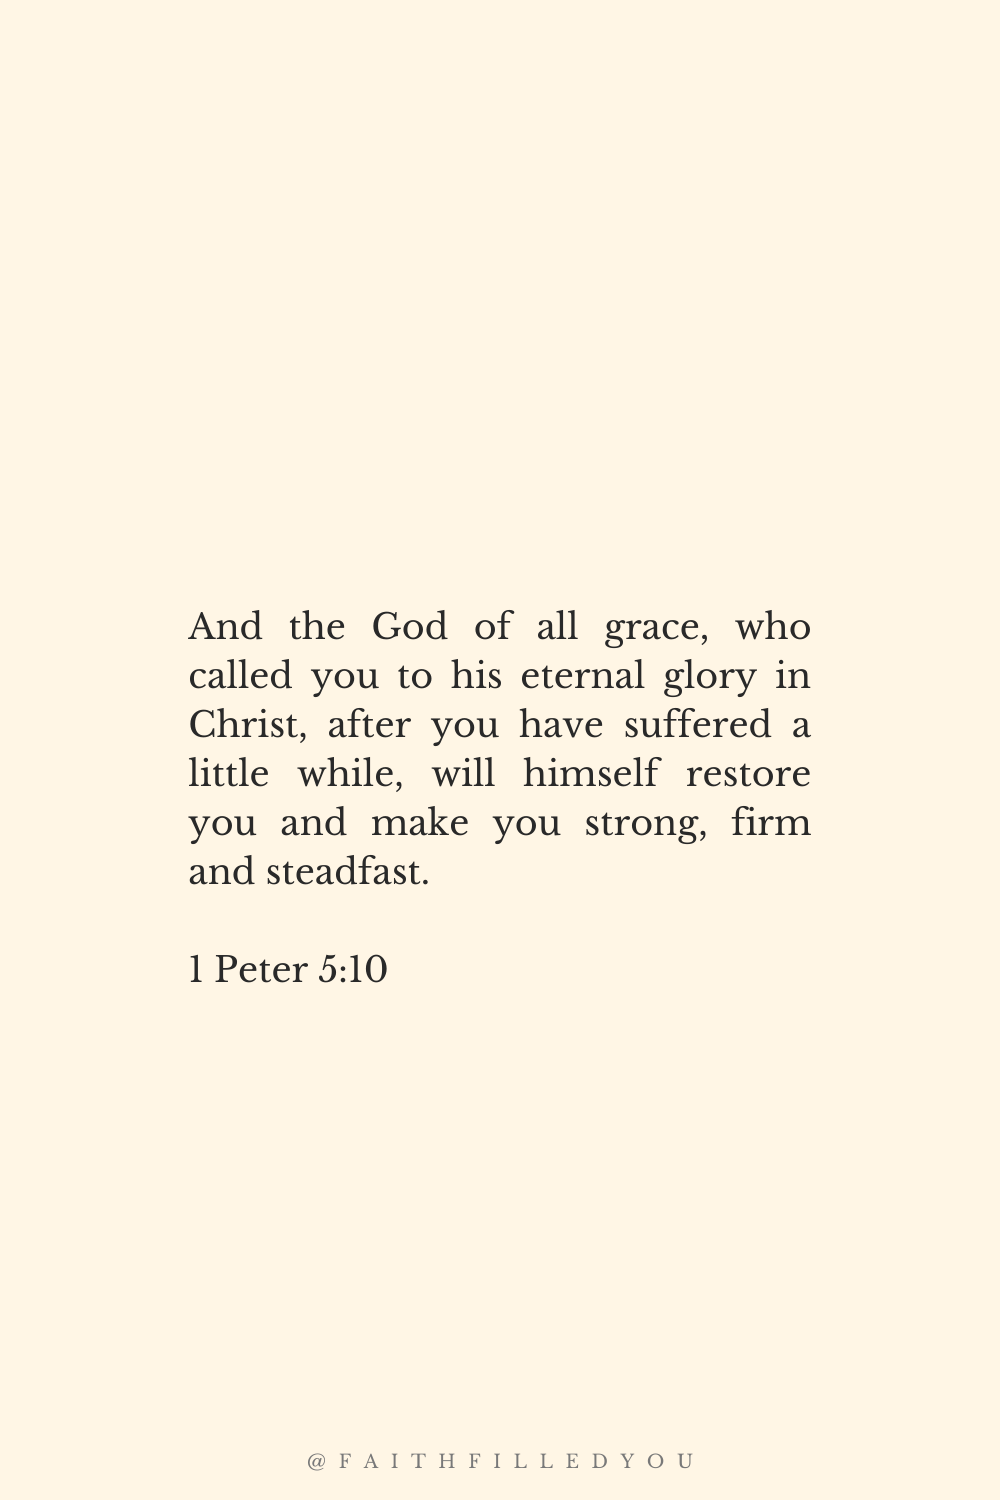 Bible Verse for Strength in Hard Times